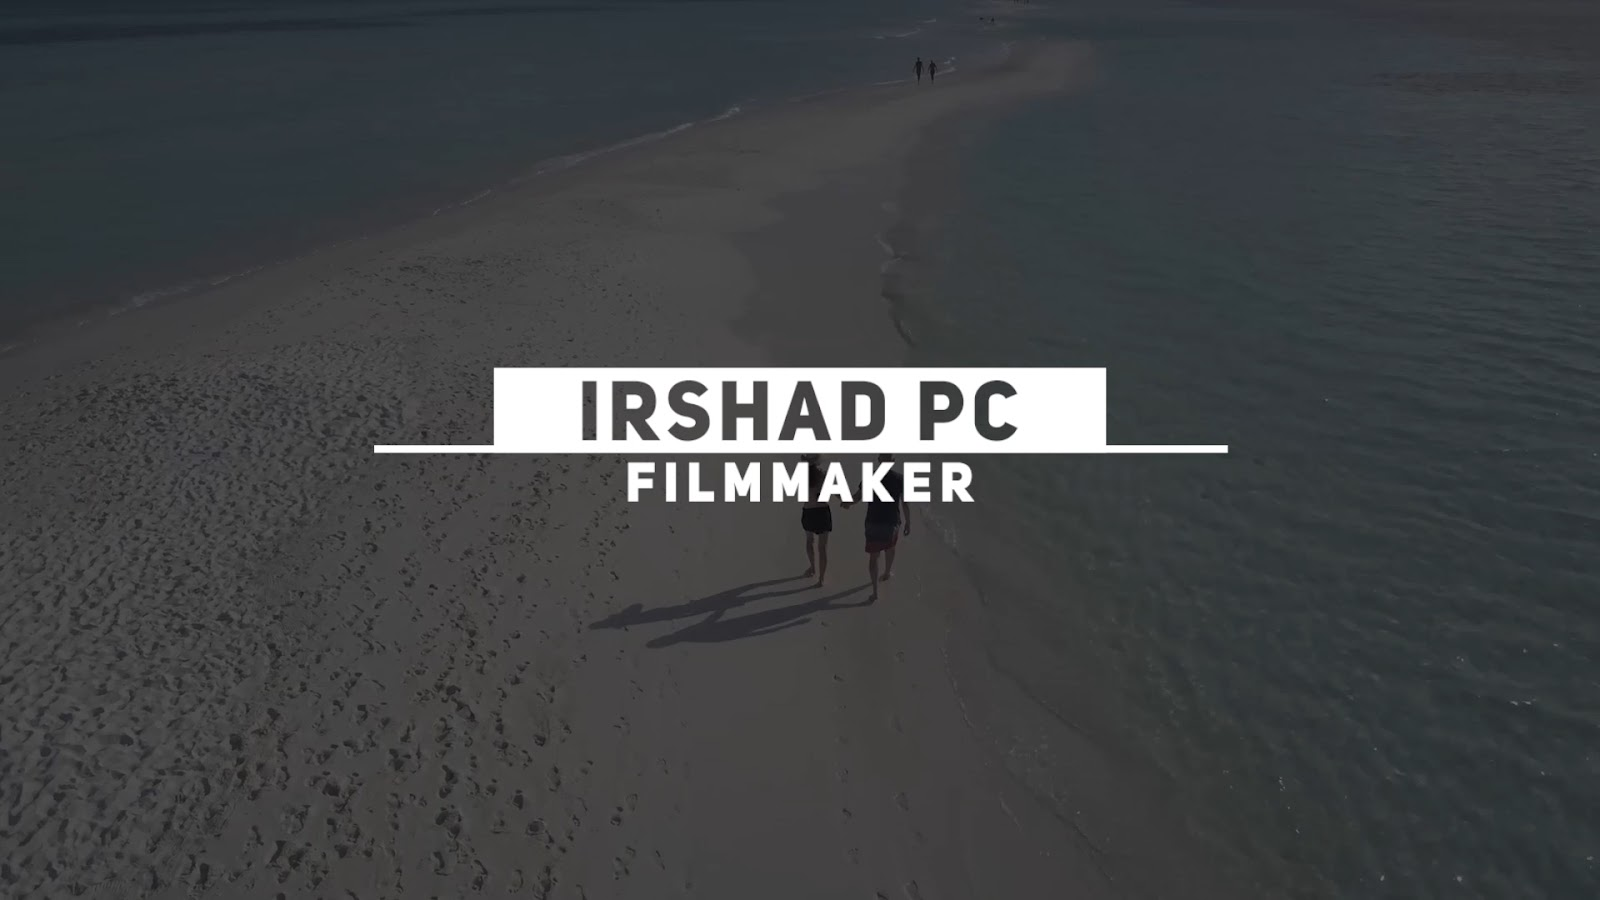 irshad pc premiere pro template pack free 10 minimal titles